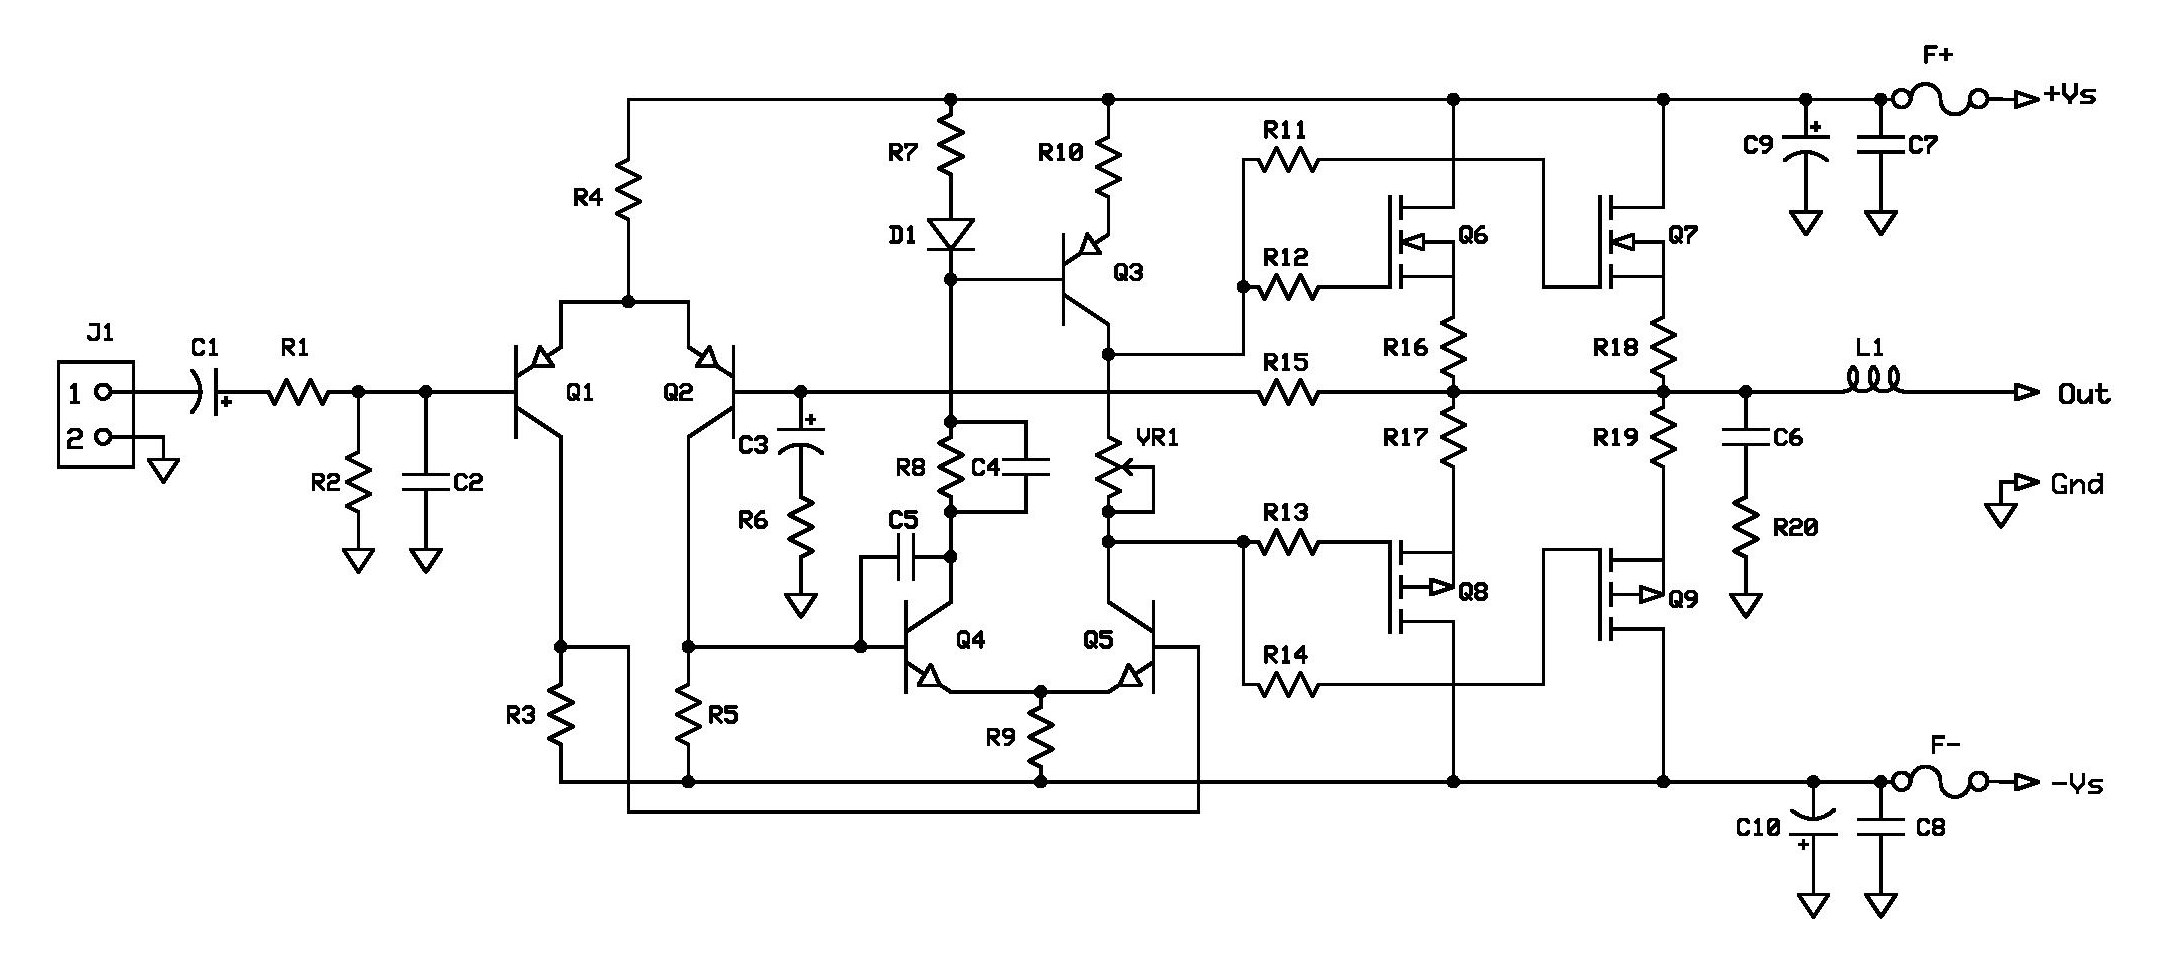 project 5 \u2013 buildaudioampsmpa1 100w mosfet schematic diagram page 001 schematic diagram of 100w mosfet power amplifier project